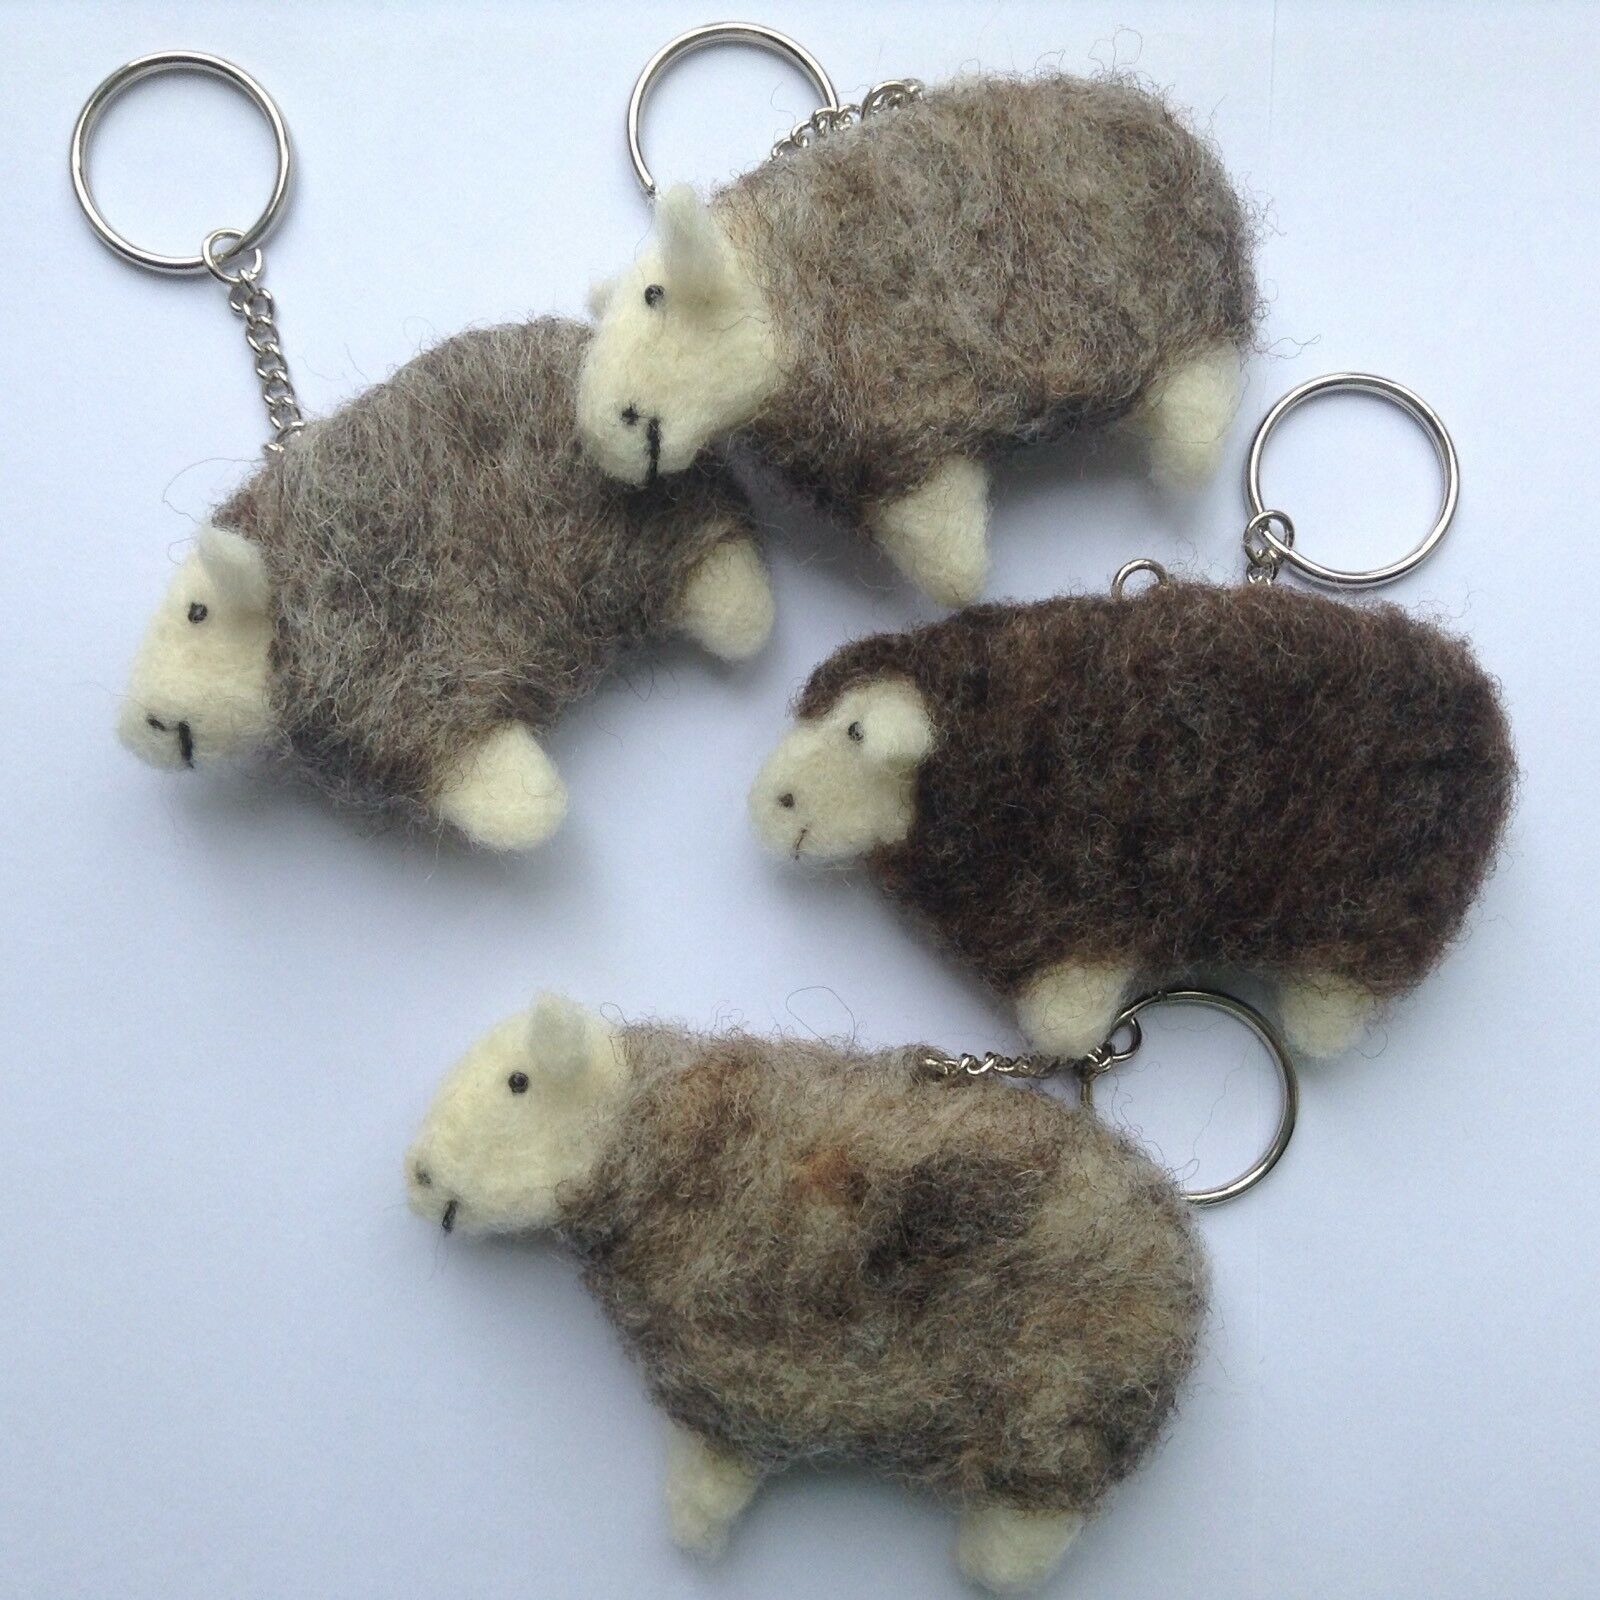 Crochet pattern keychain cute cow. Crochet your own amigurumi | Etsy | 1600x1600